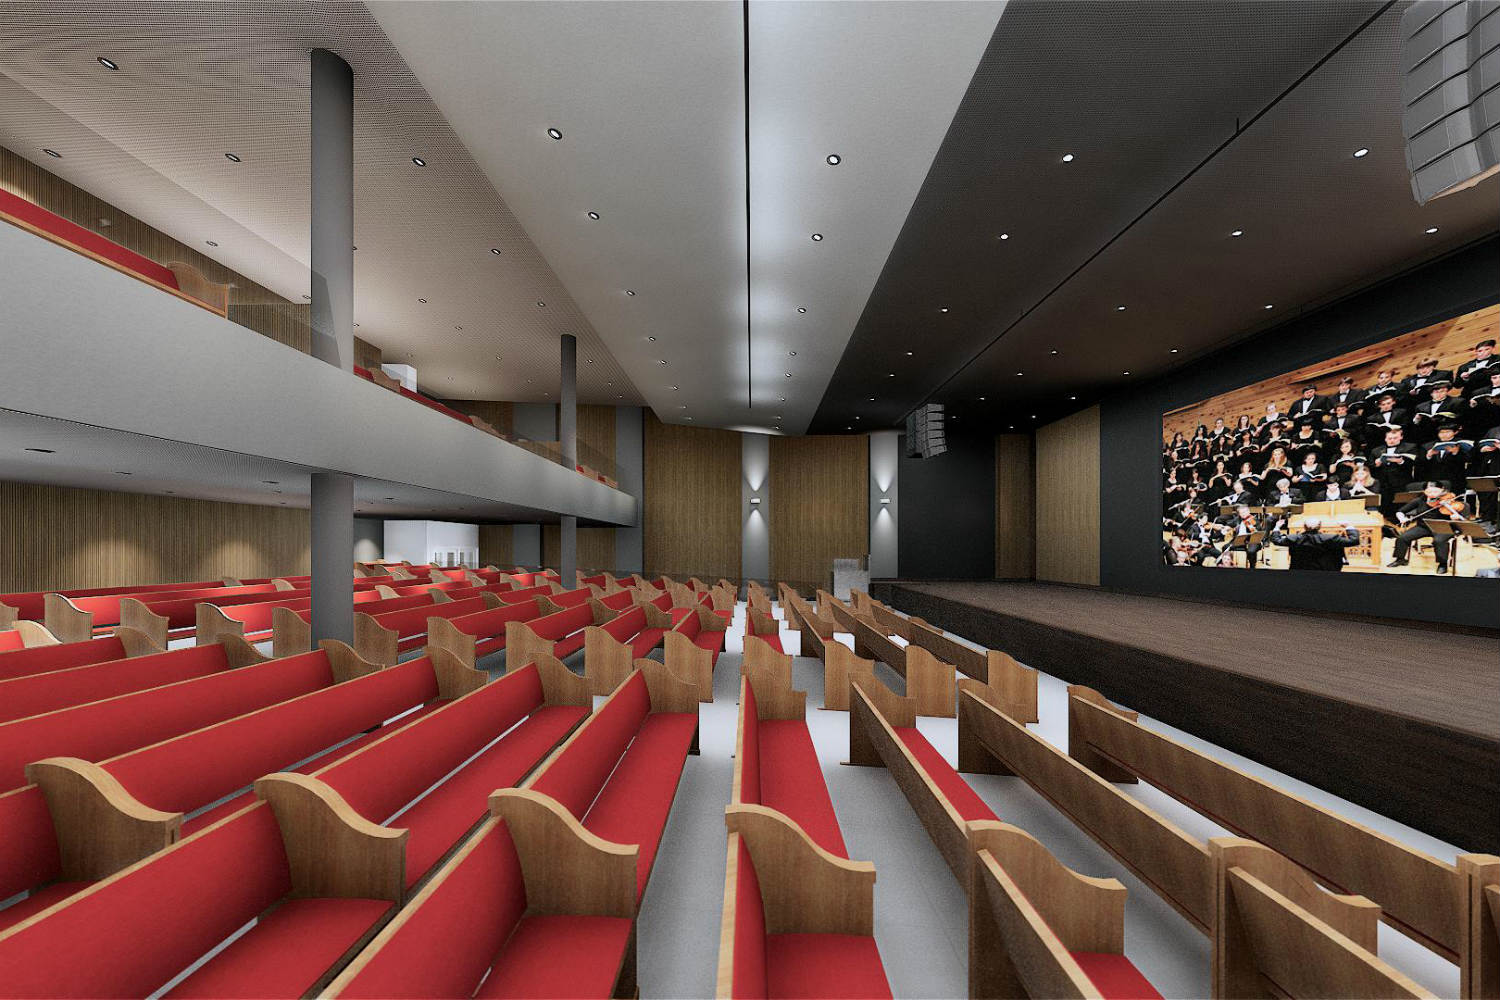 IBP has created a contemporary house of worship in São José. By engaging WSDG at the design stage, the Church planners were assured of providing their parishioners with superb acoustics for their worship services. Render 4